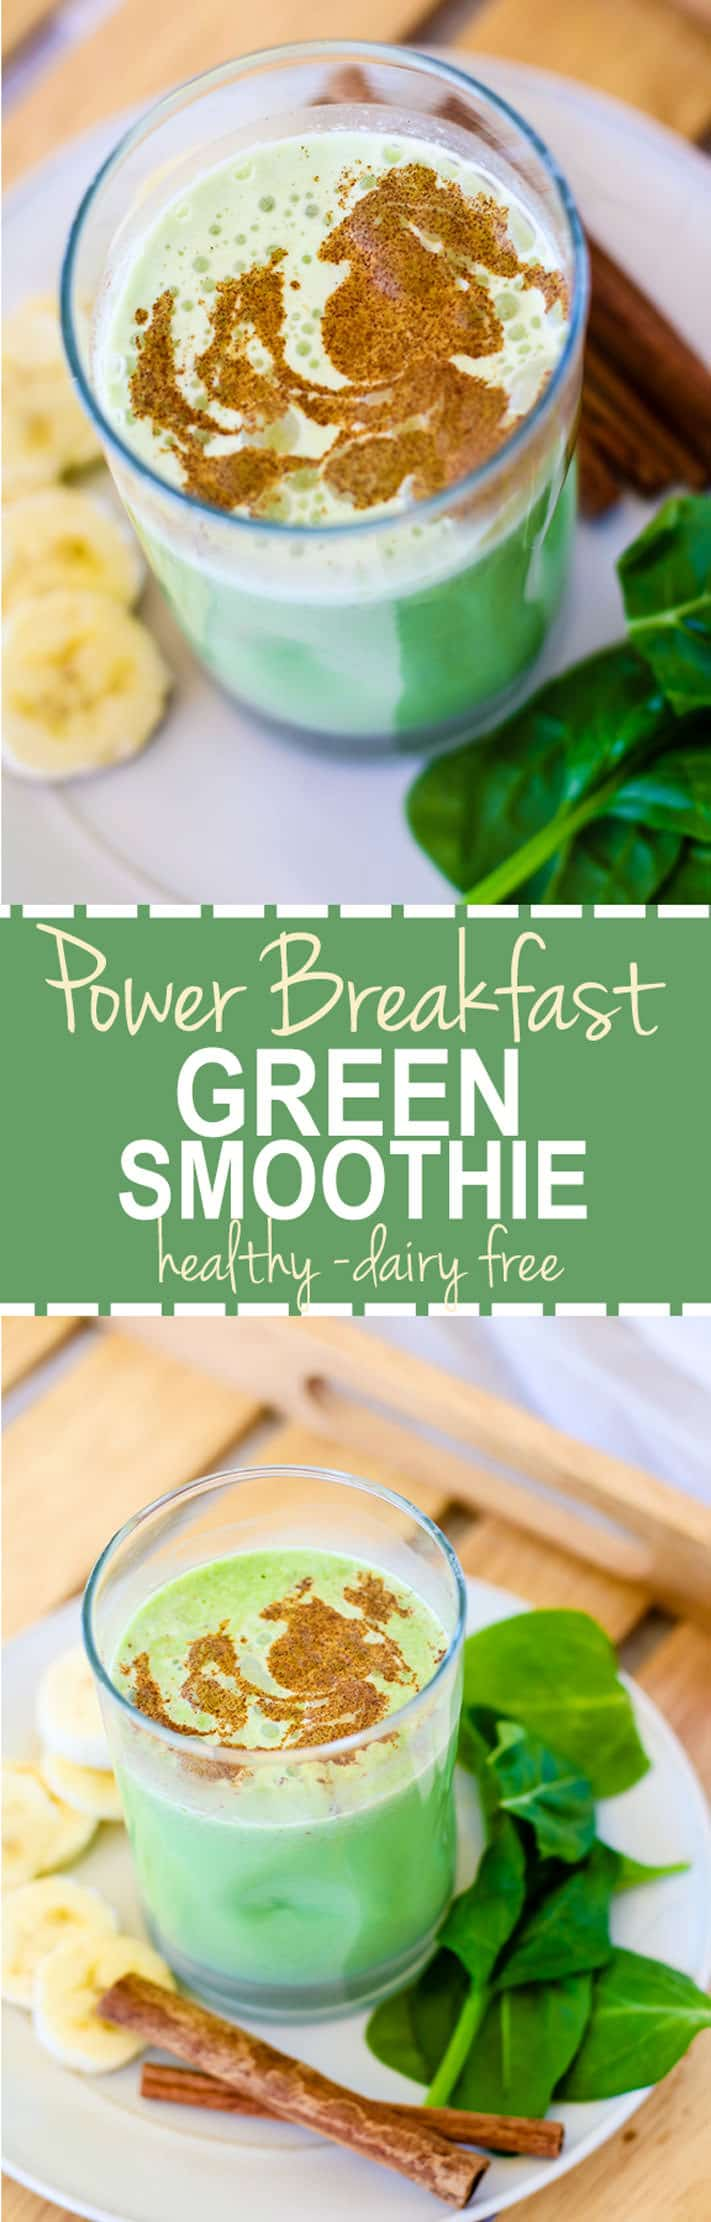 Good for You Naturally Green Recipes - POWER breakfast Green Smoothie recipe with a pinch of matcha! Protein packed, dairy free, and healthy.